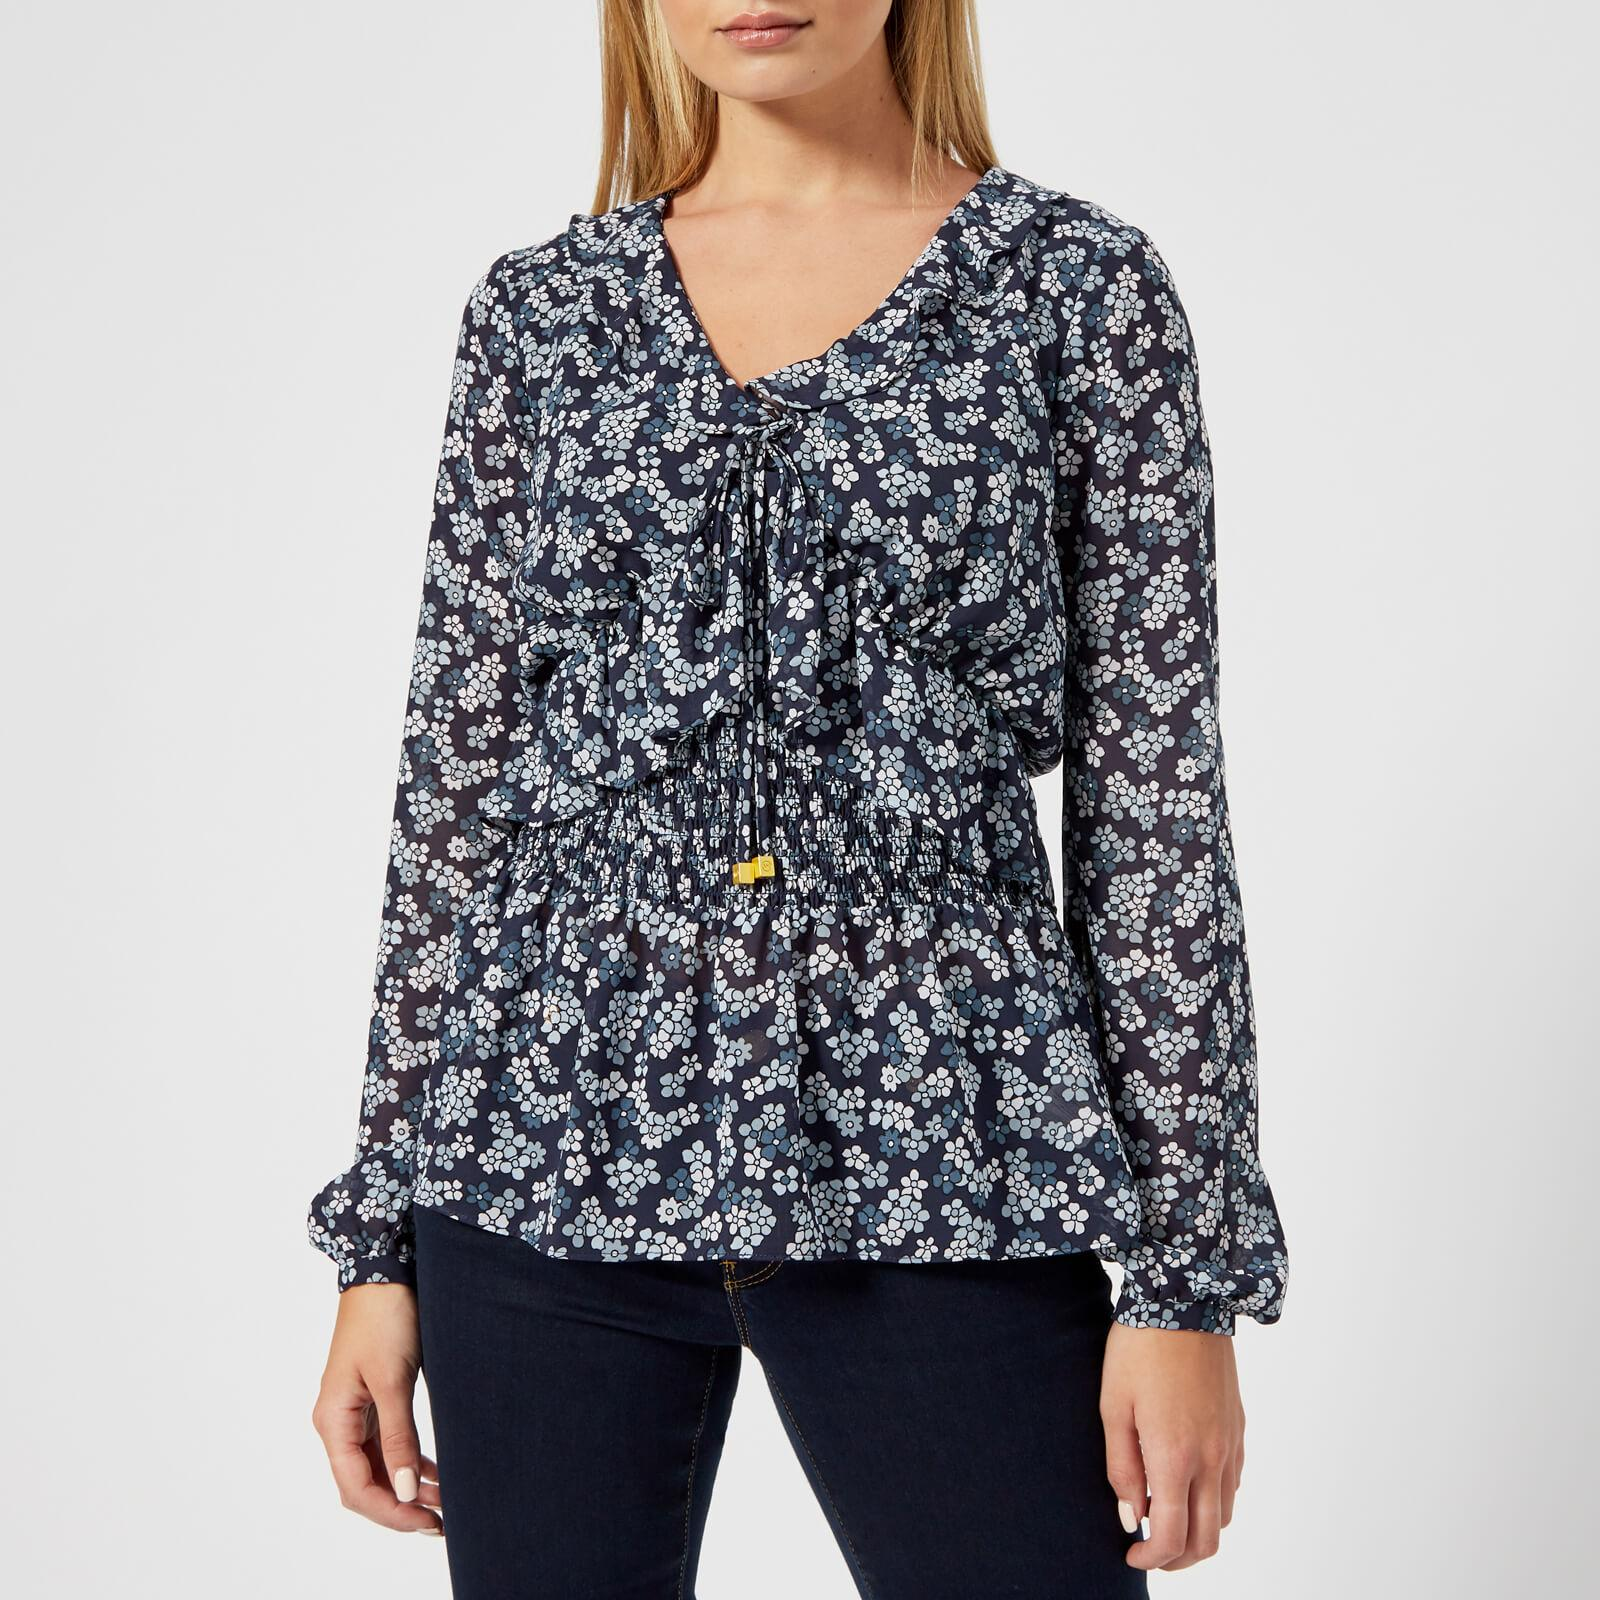 a4703c8180c13 Lyst - MICHAEL Michael Kors Cherry Blossom Top in Blue